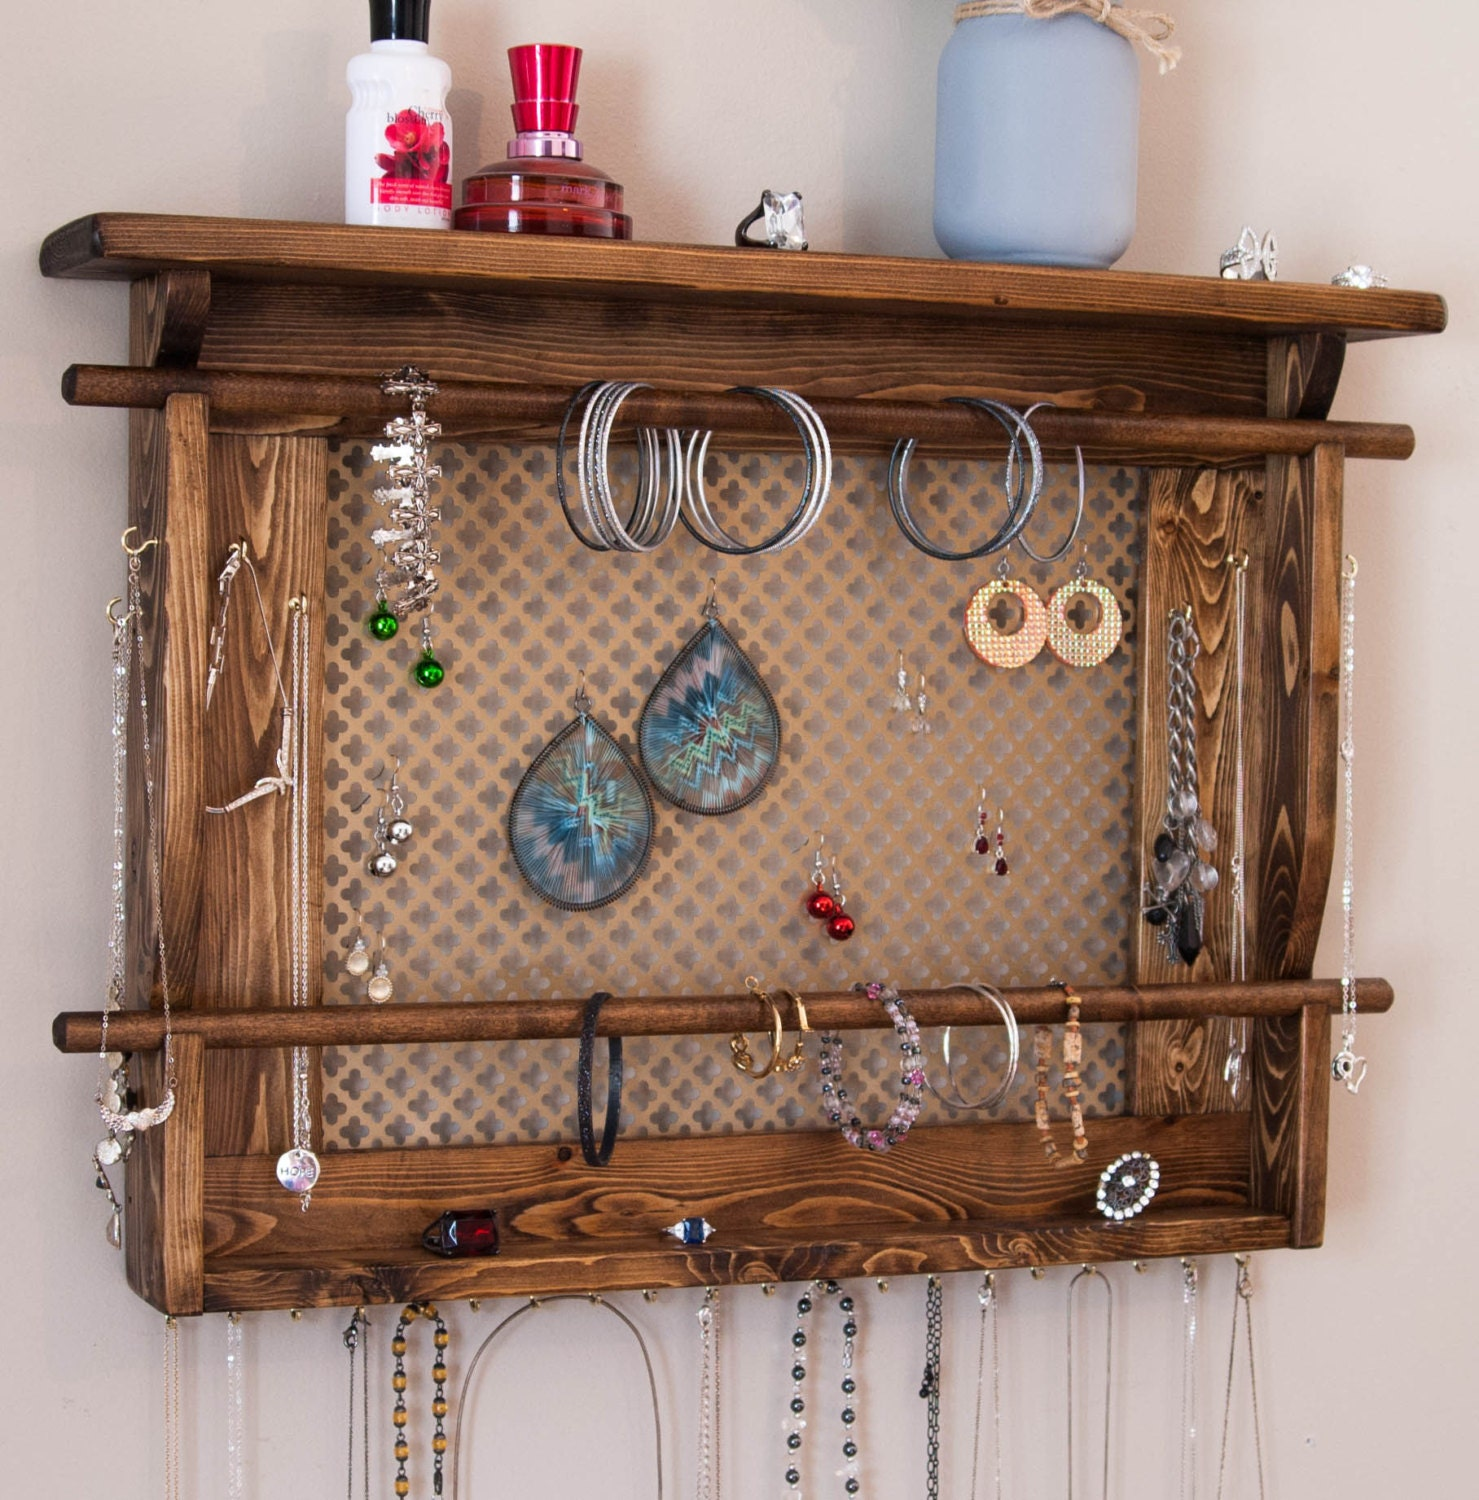 Jewelry Organizer Wall Jewelry Holder And Organizers On: Jewelry Holder Wall Jewelry Organizer With Two By MrandMissis